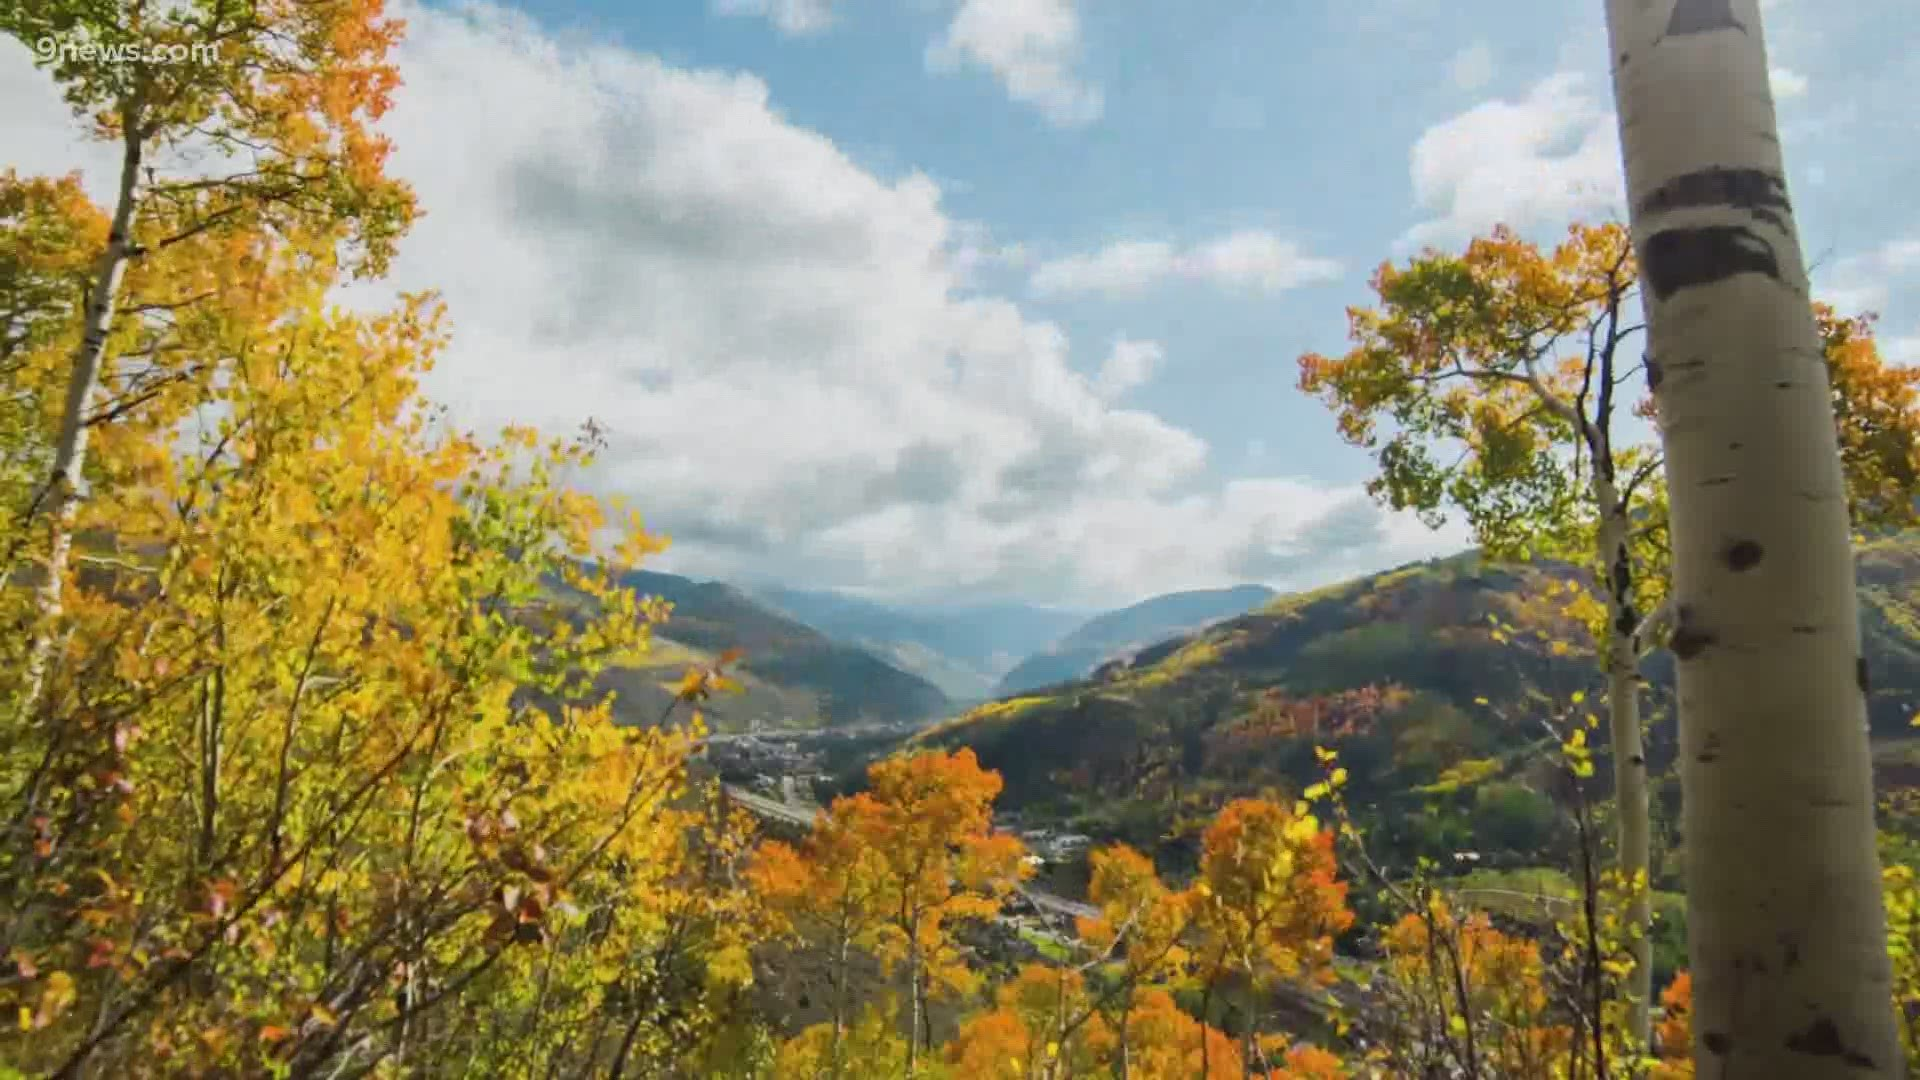 Colorado Fall Colors When And Where Leaves Will Peak In 2020 9news Com